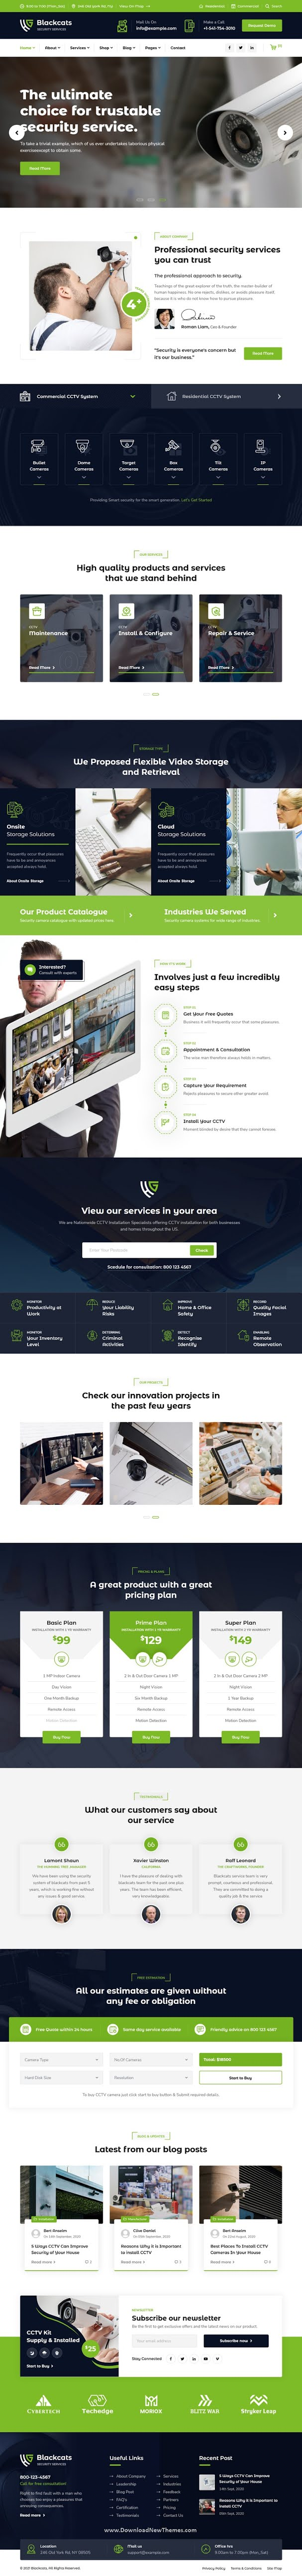 CCTV and Security Bootstrap Template